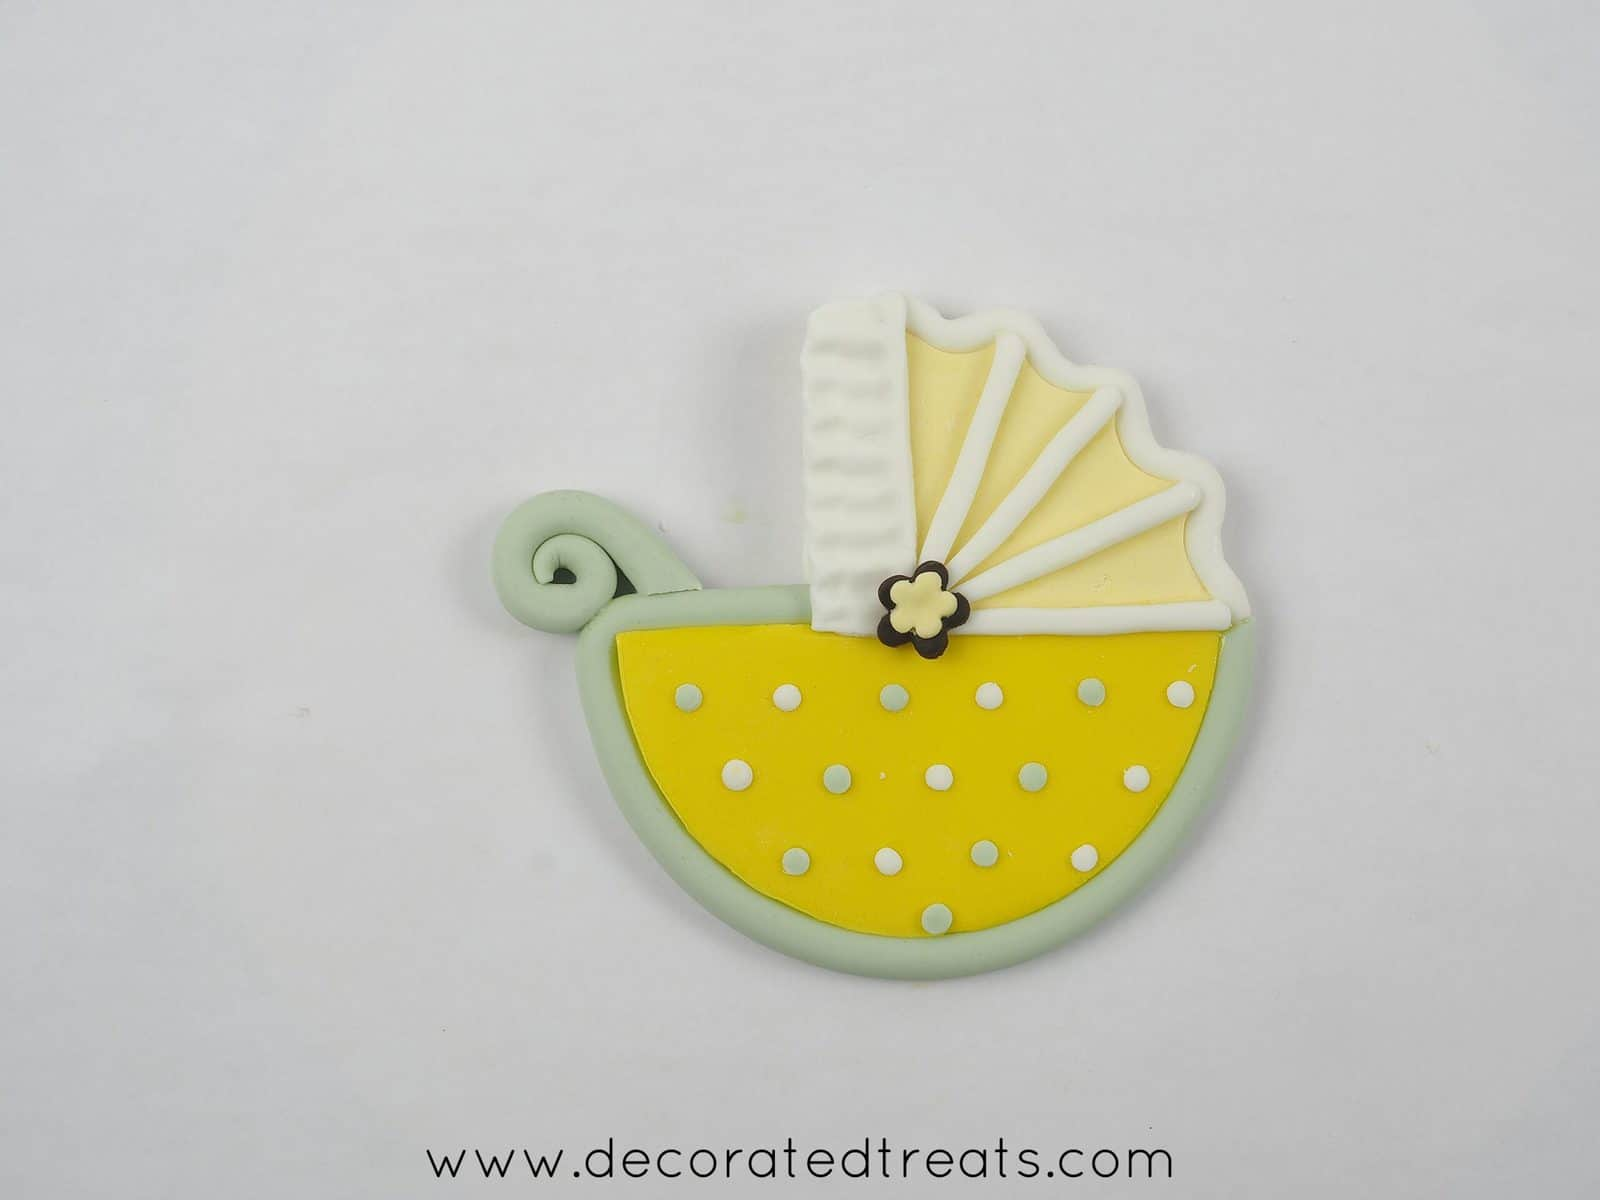 Fondant stroller without wheels